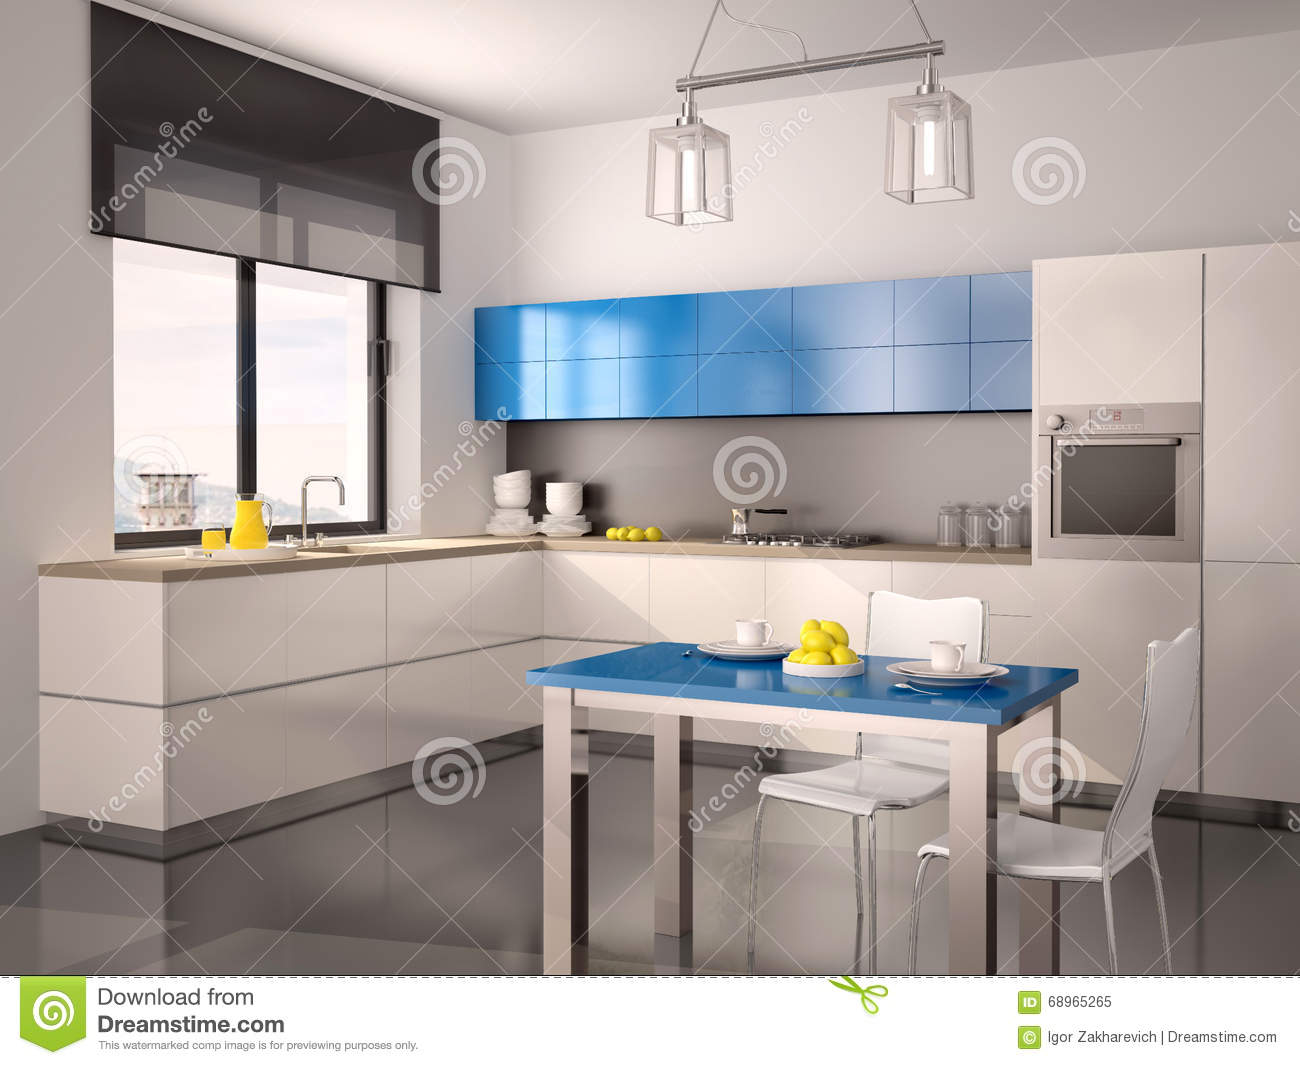 Illustration of interior of modern kitchen in